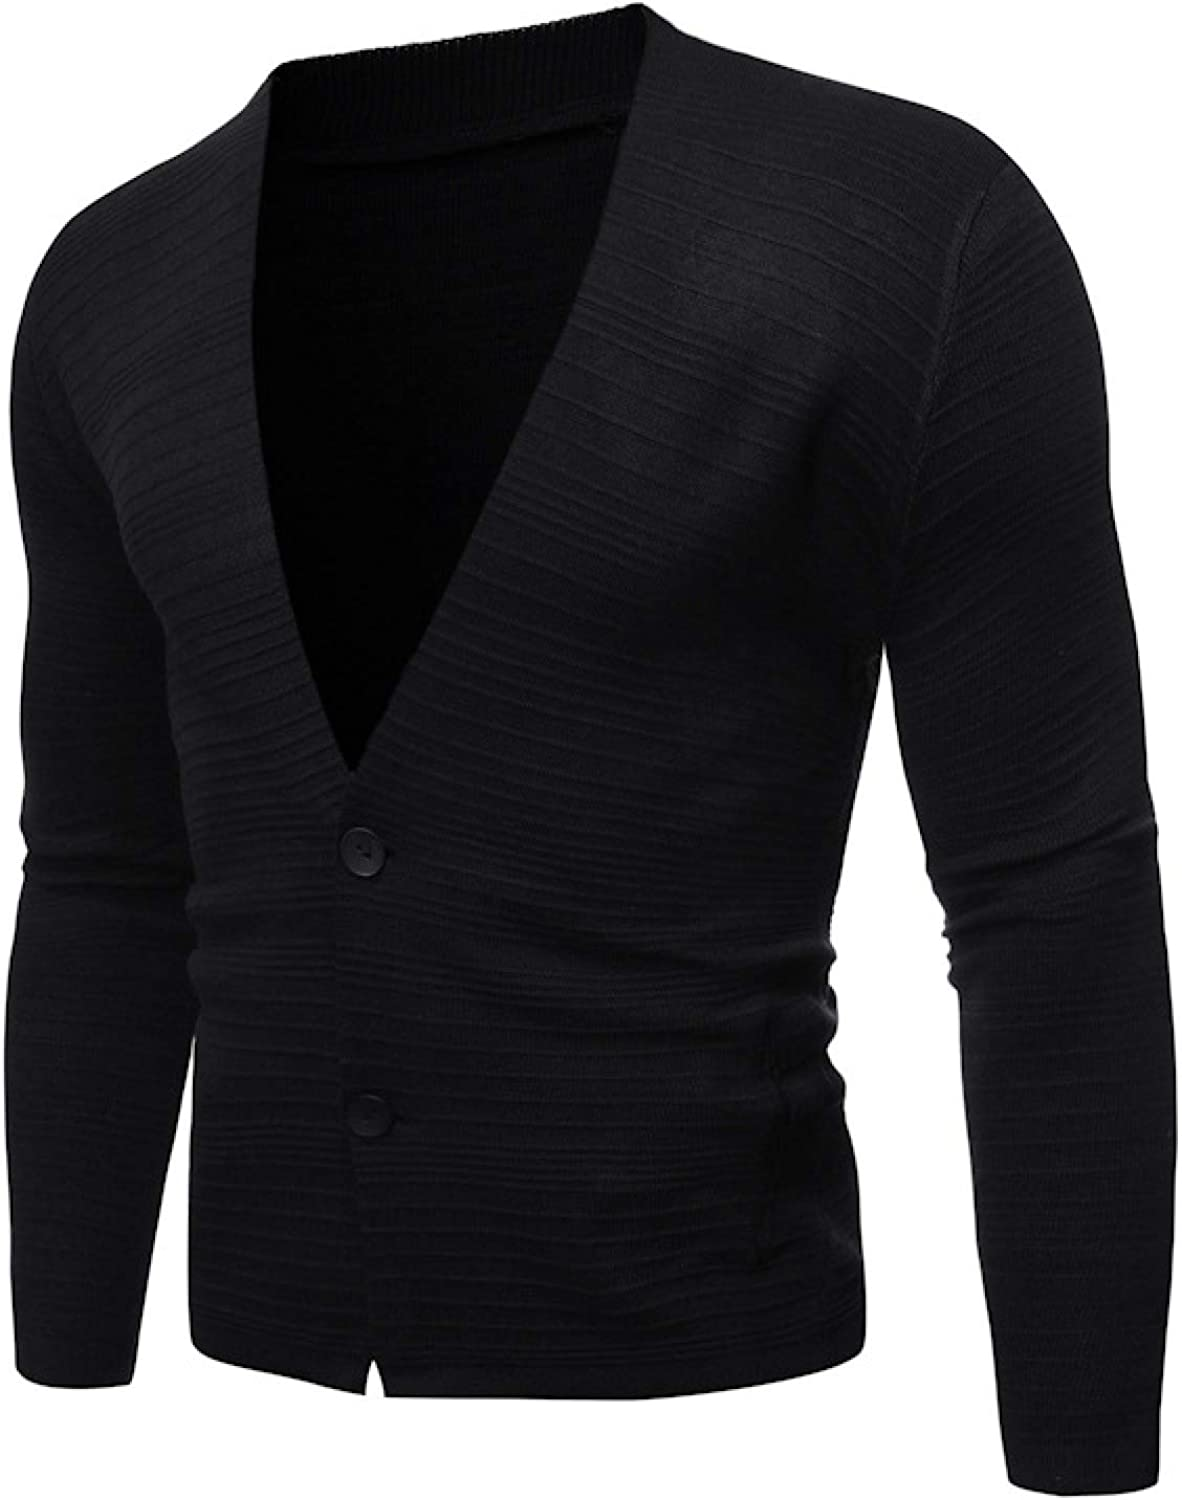 Mens Plain Coloured Knitted Cardigan,Classic Style Cardigans V Neck Button